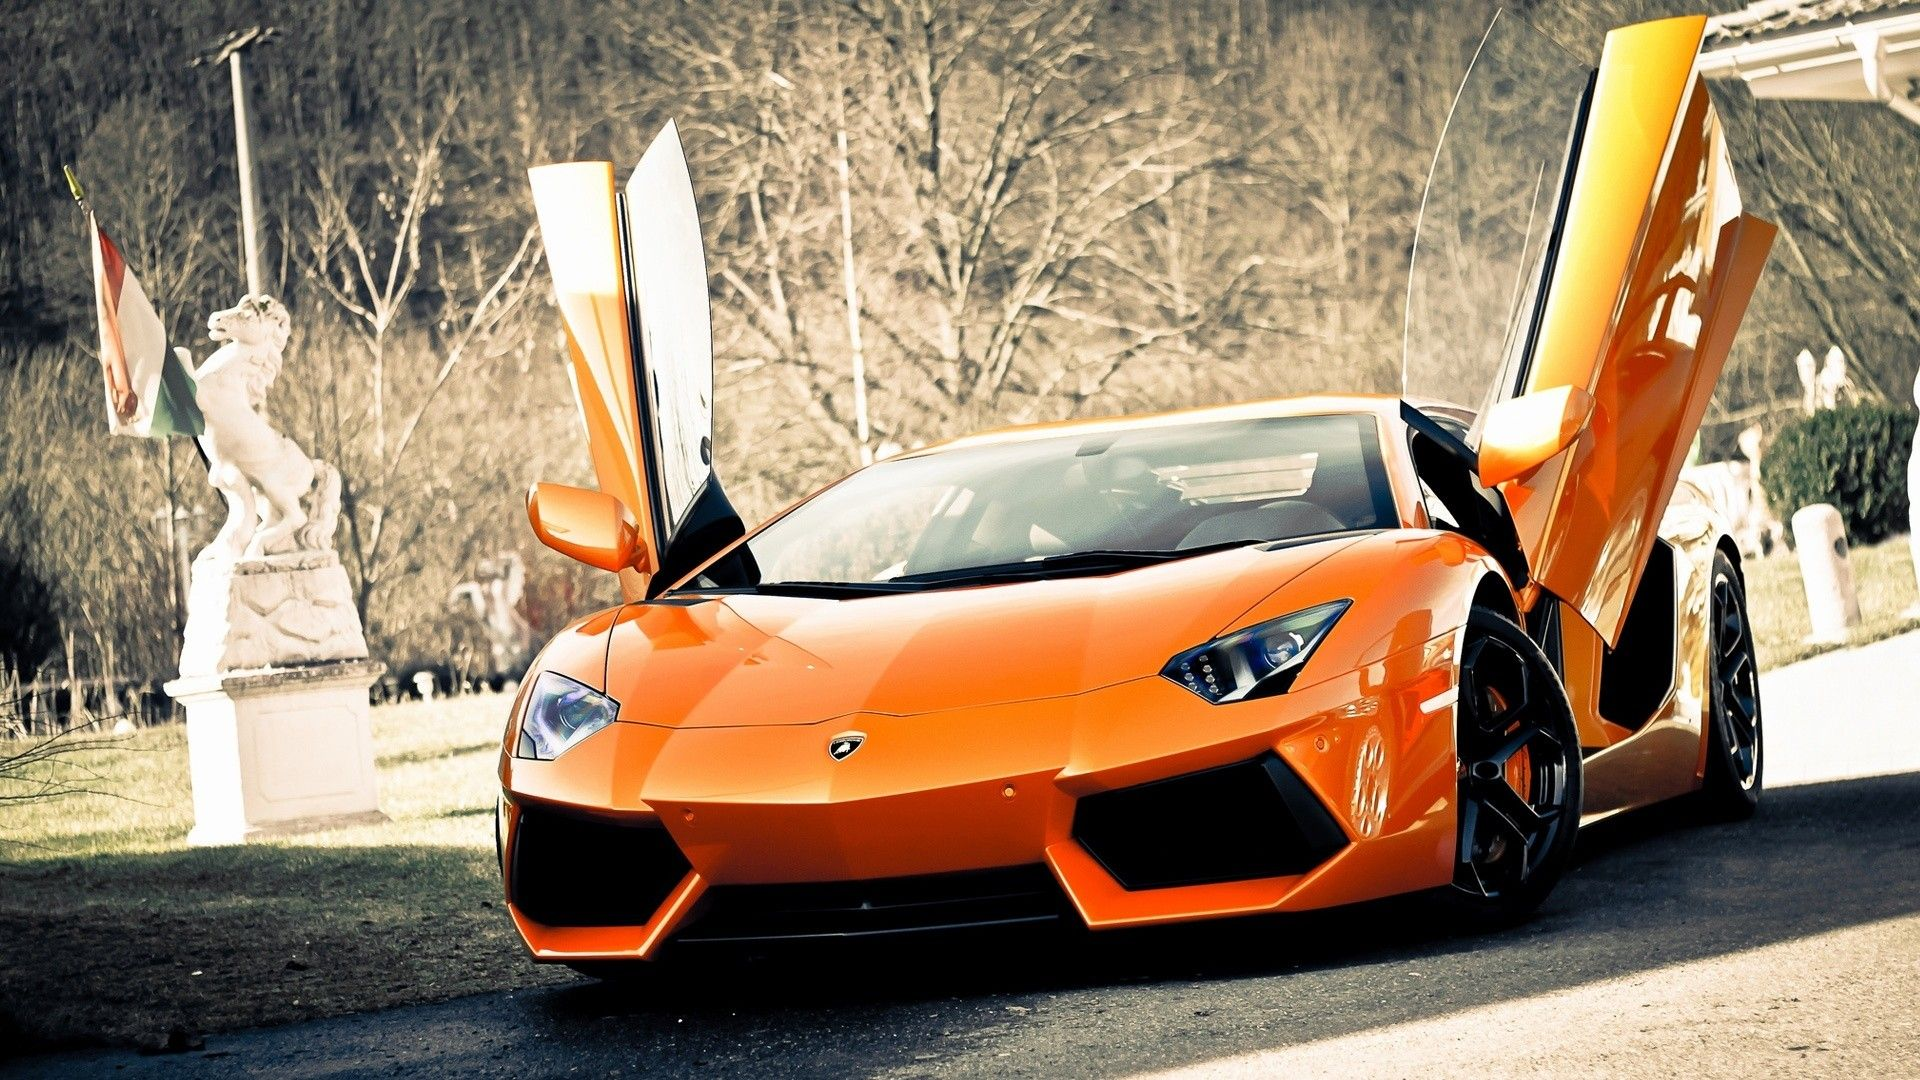 cars-hd-wallpapers